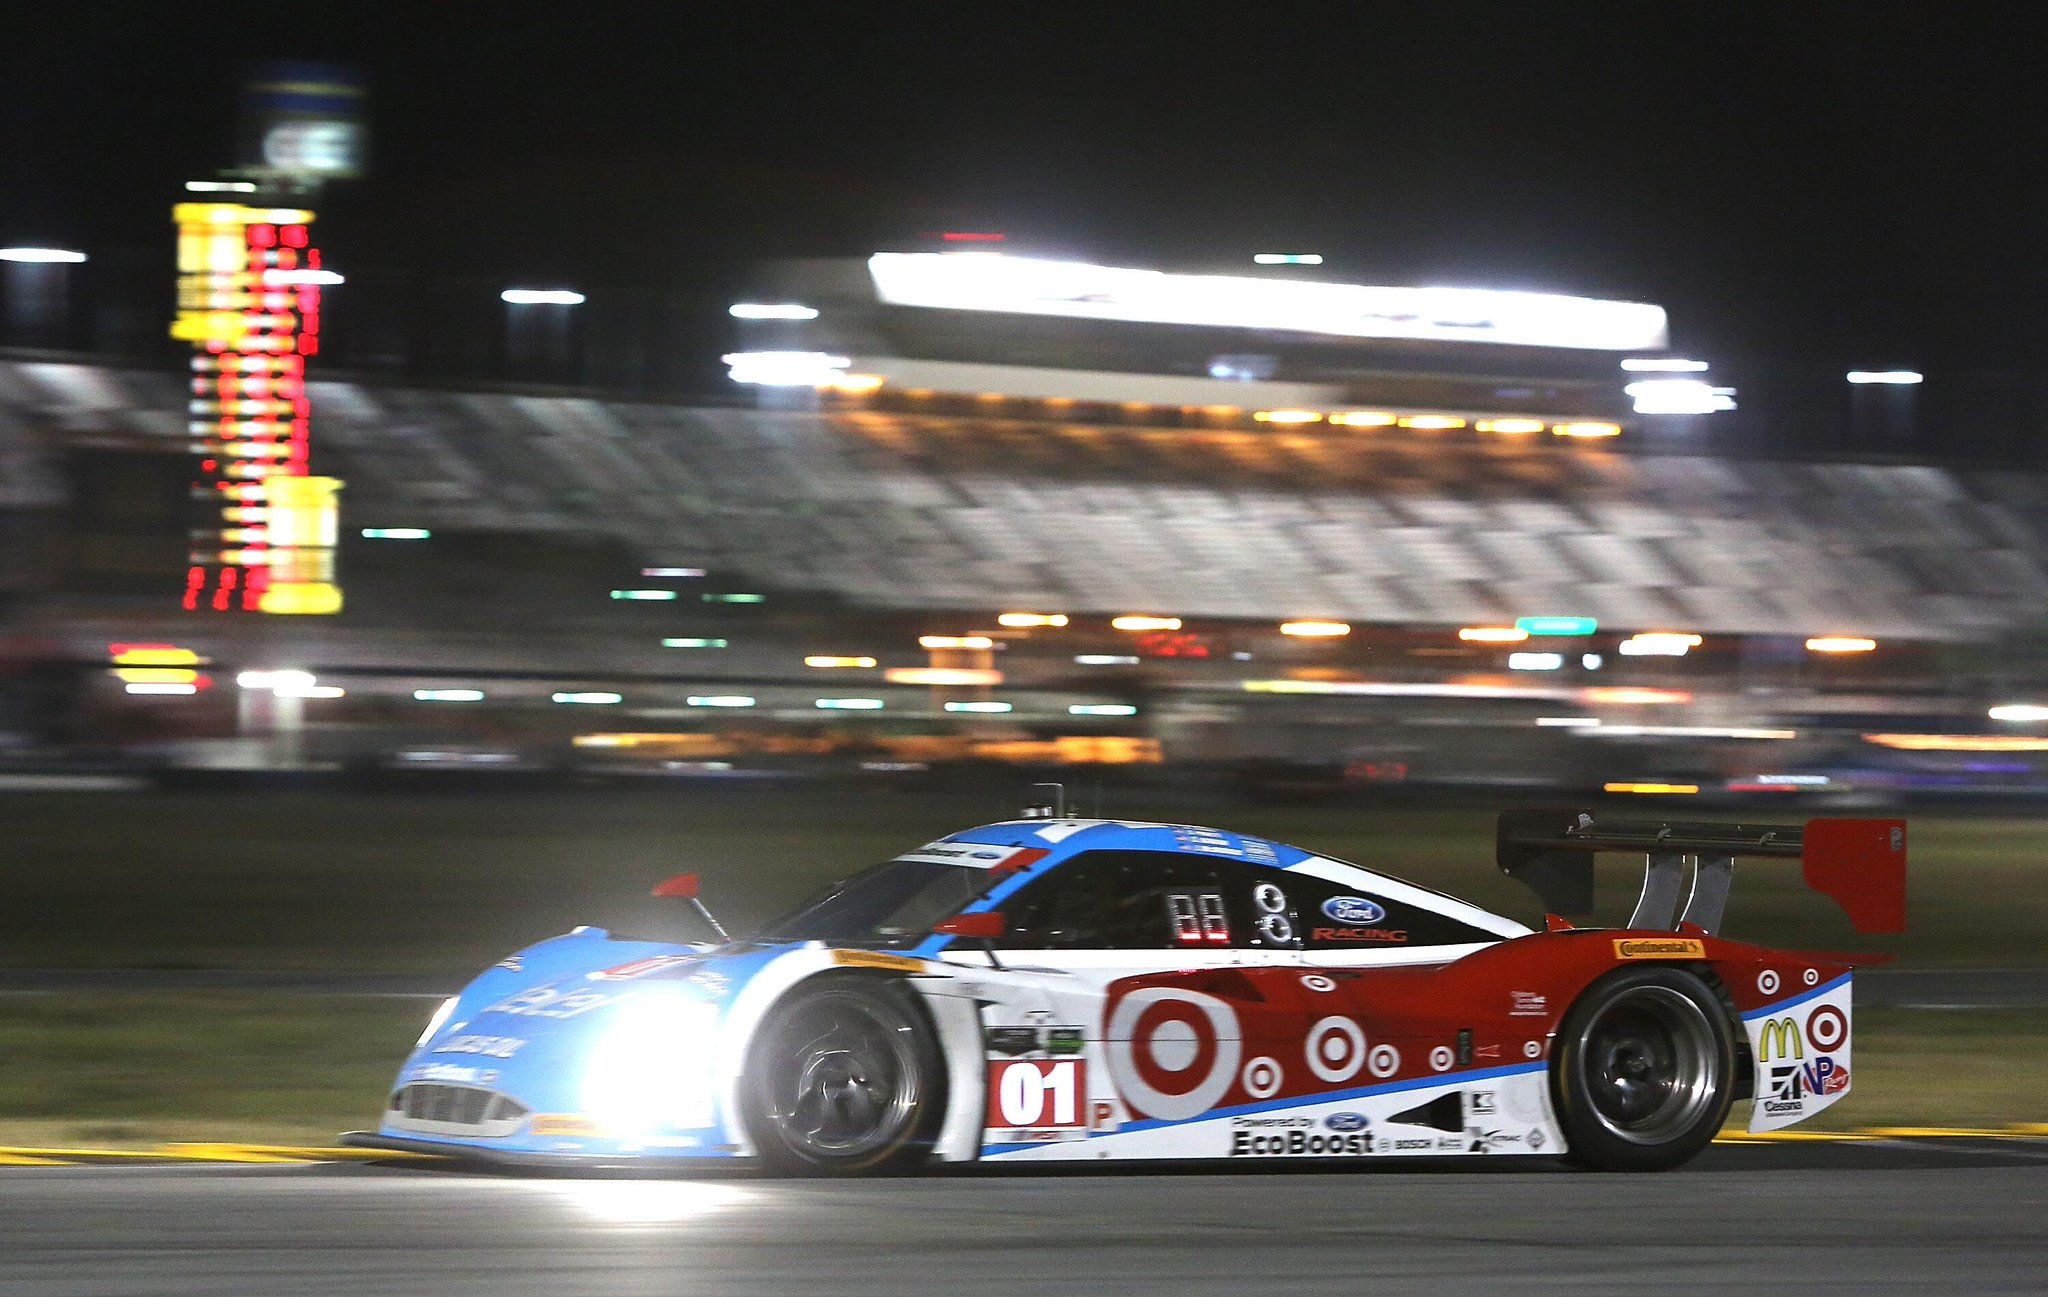 With daylight fast approaching see where your favorite team is heading into the final stints of the #Rolex24. http://t.co/EonKWNYeHM